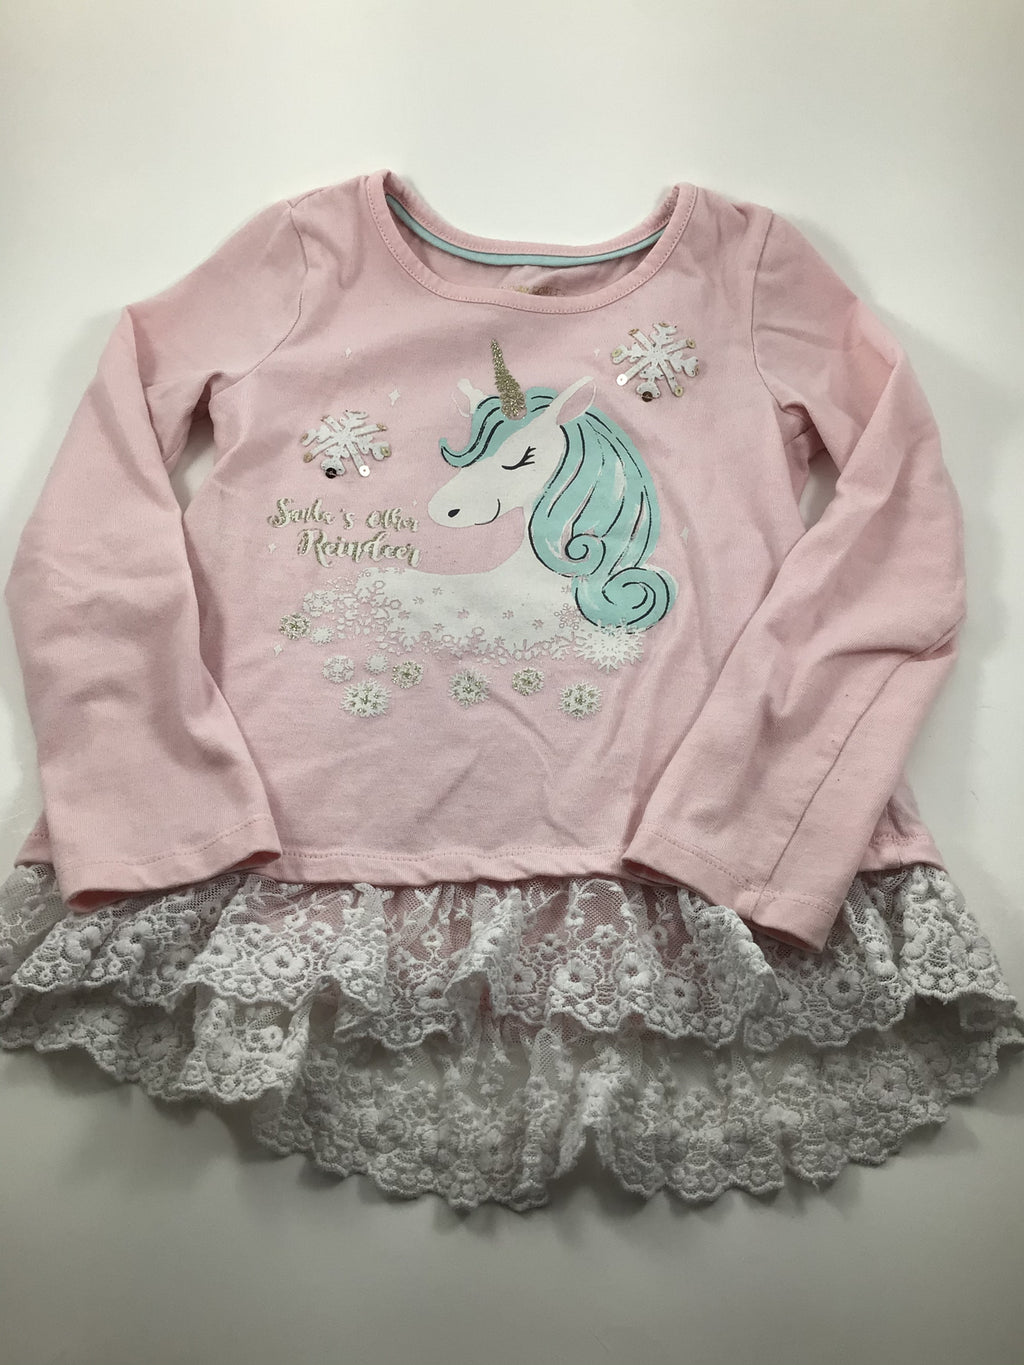 Girl's Long Sleeve Shirt - Size 5/6